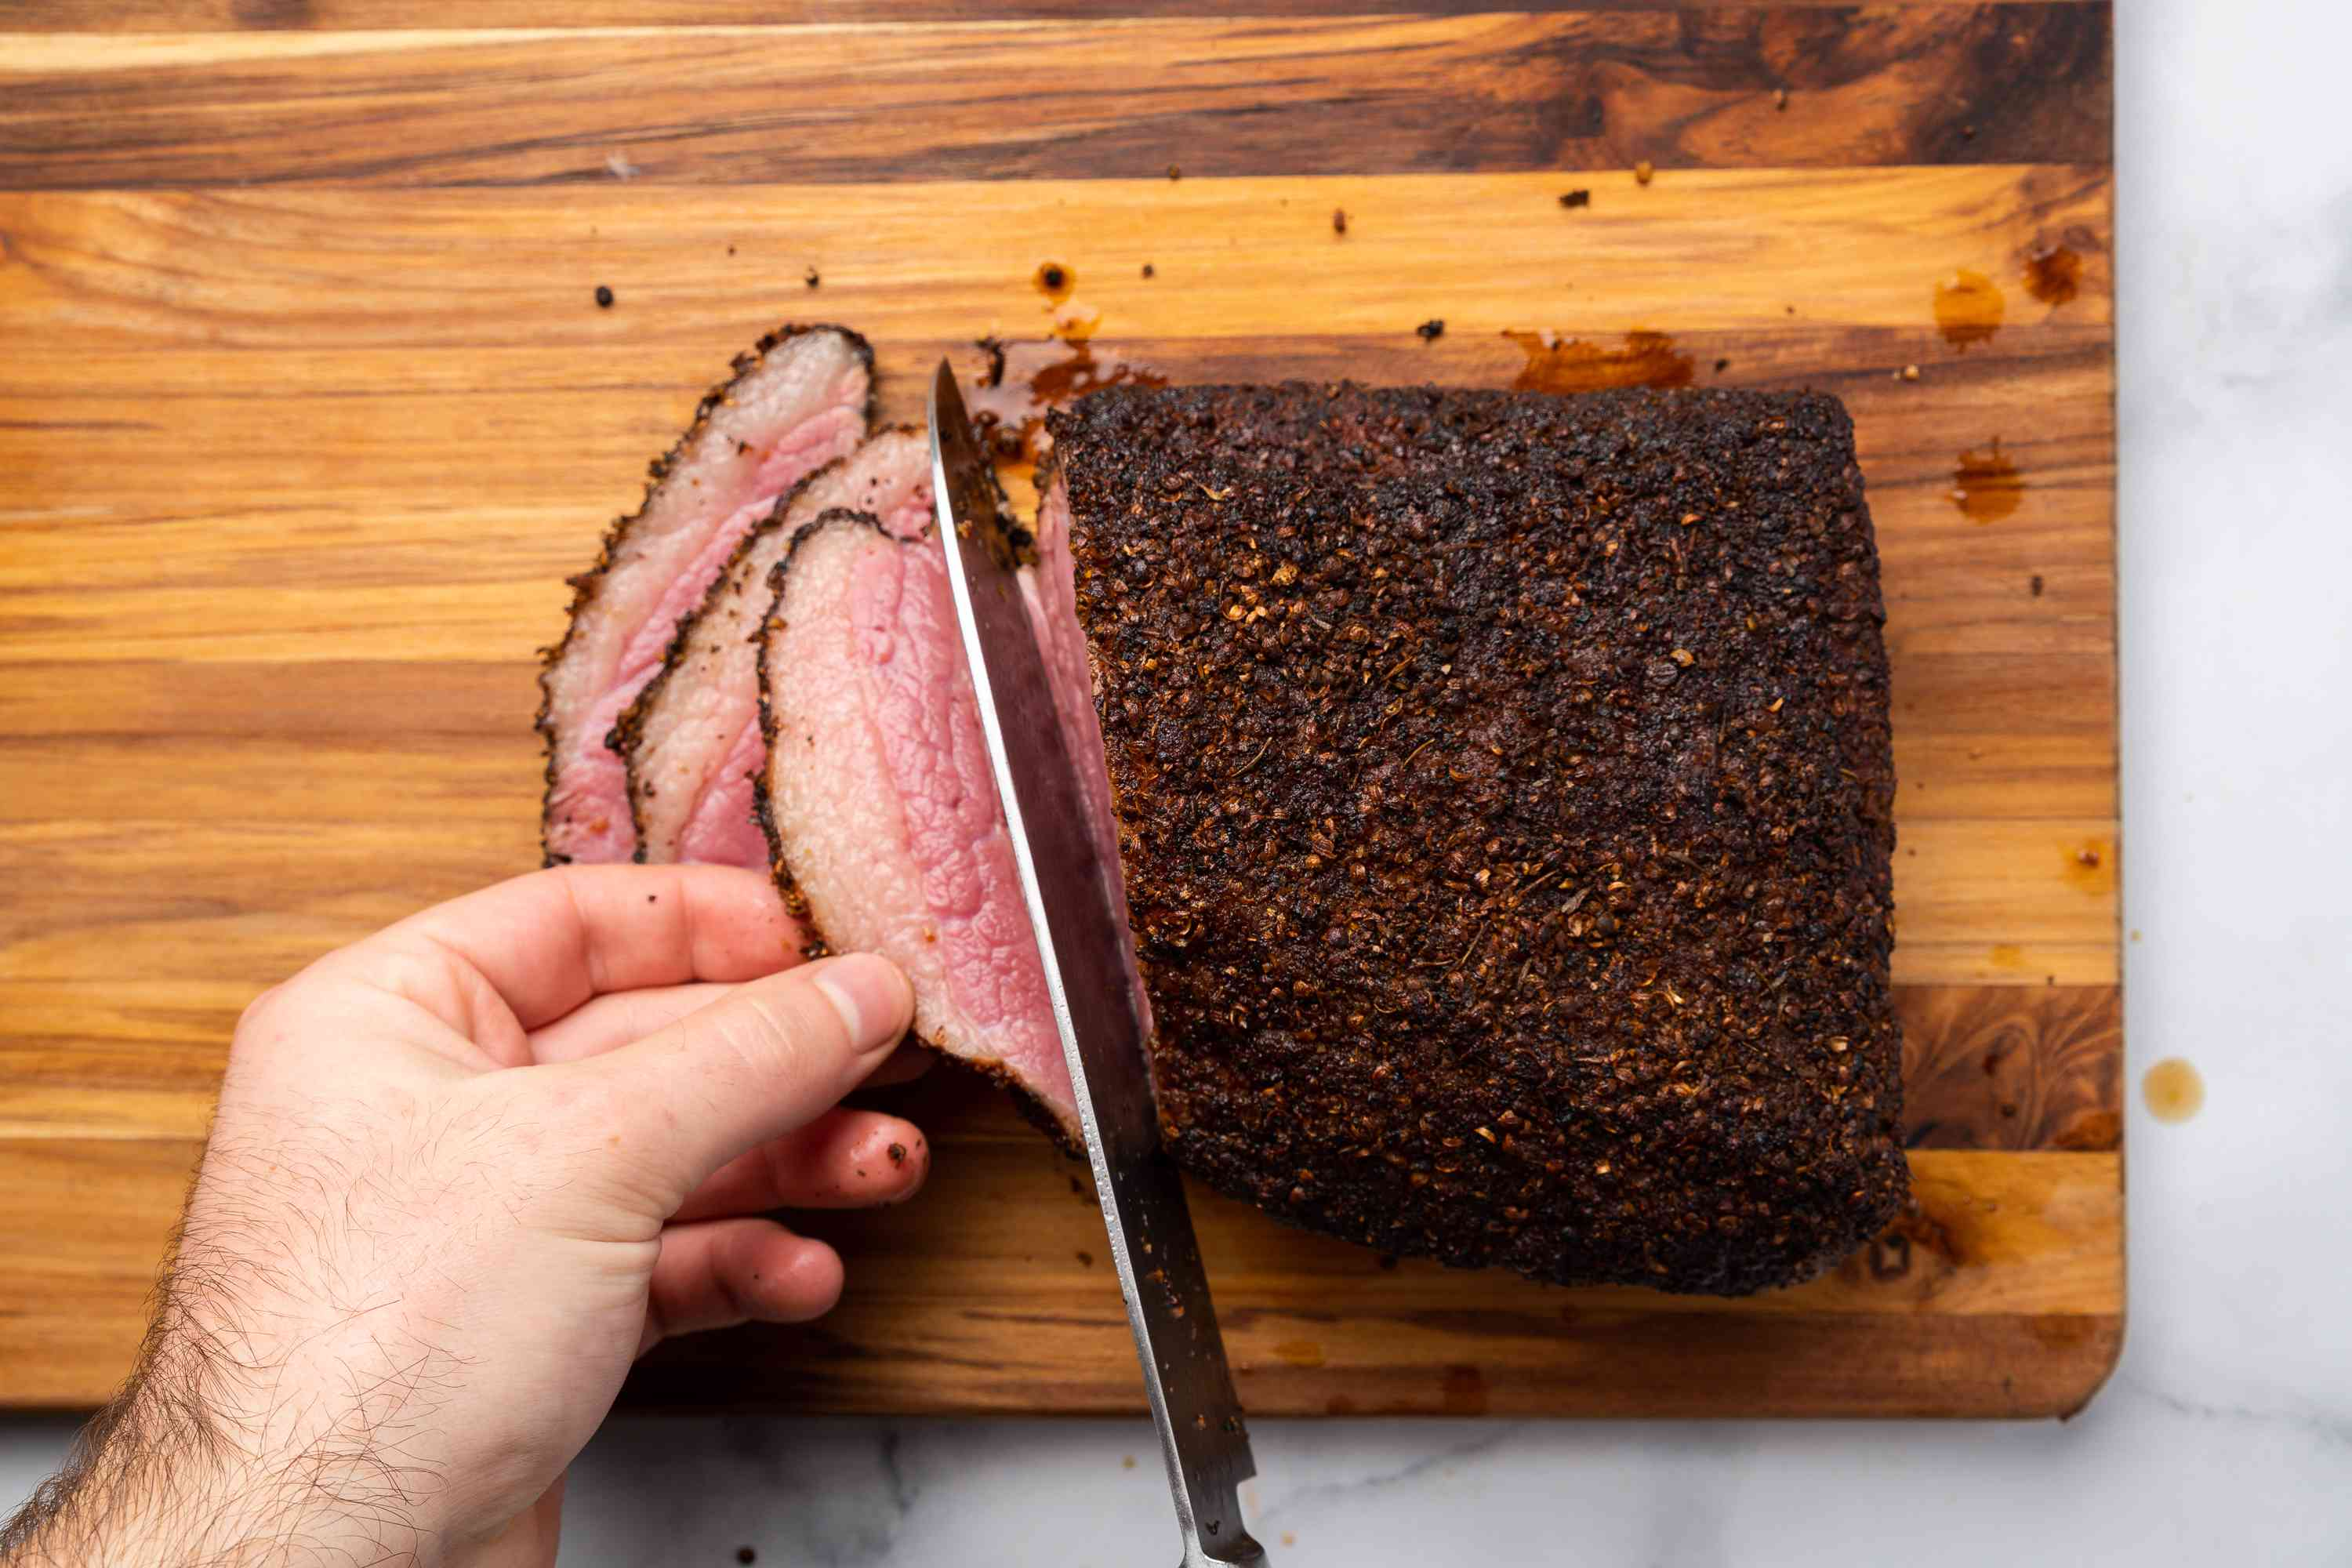 Smoked corned beef sliced on a cutting board